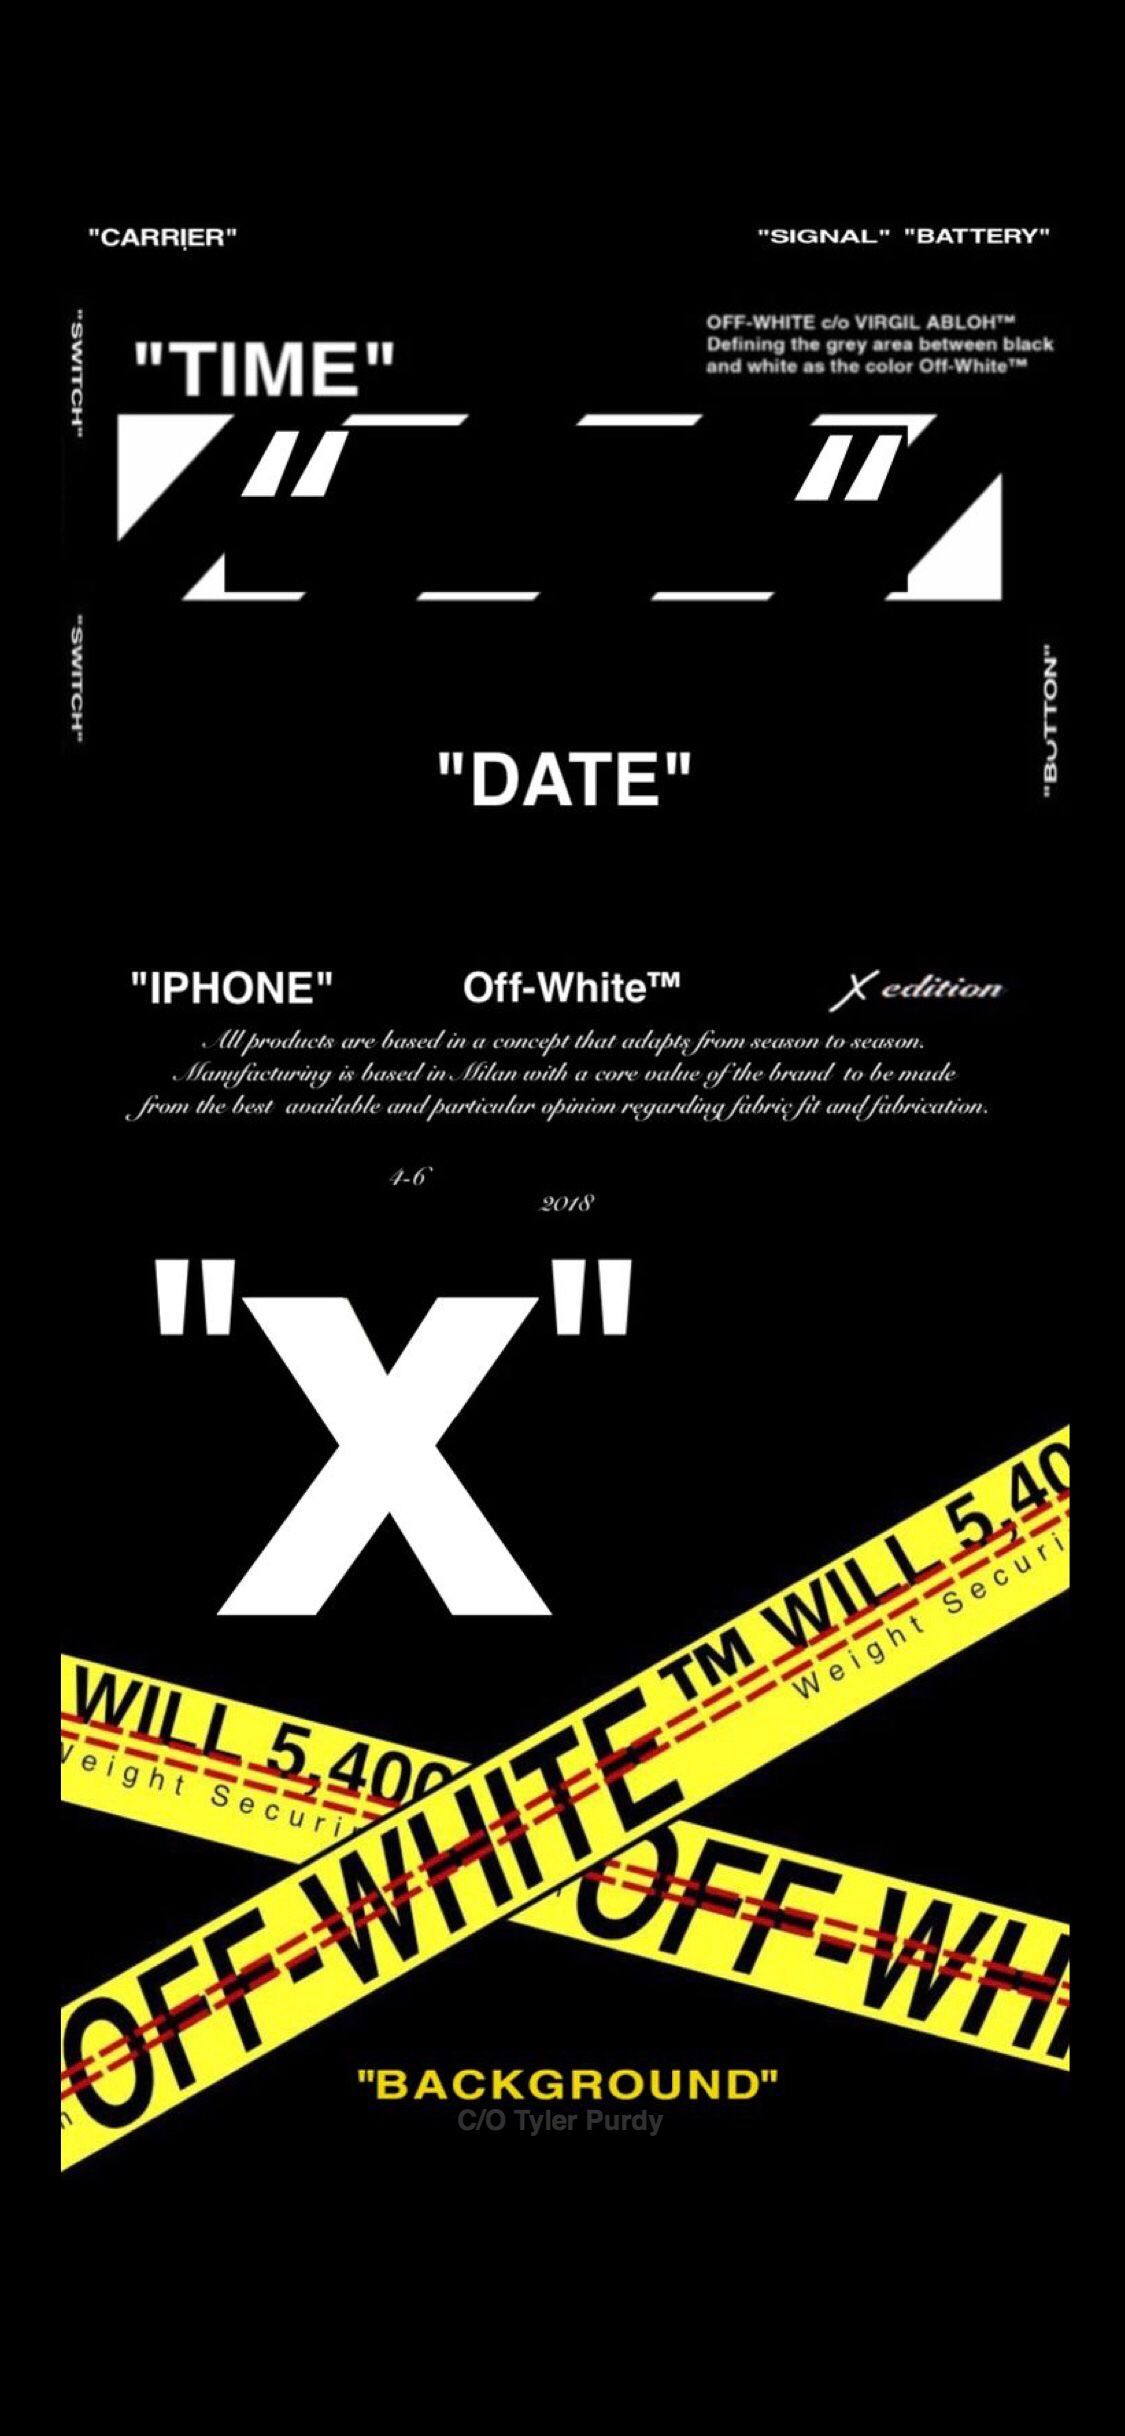 Download Kaws Off White Wallpaper White Wallpaper For Iphone Wallpaper Off White Iphone Wallpaper Off White